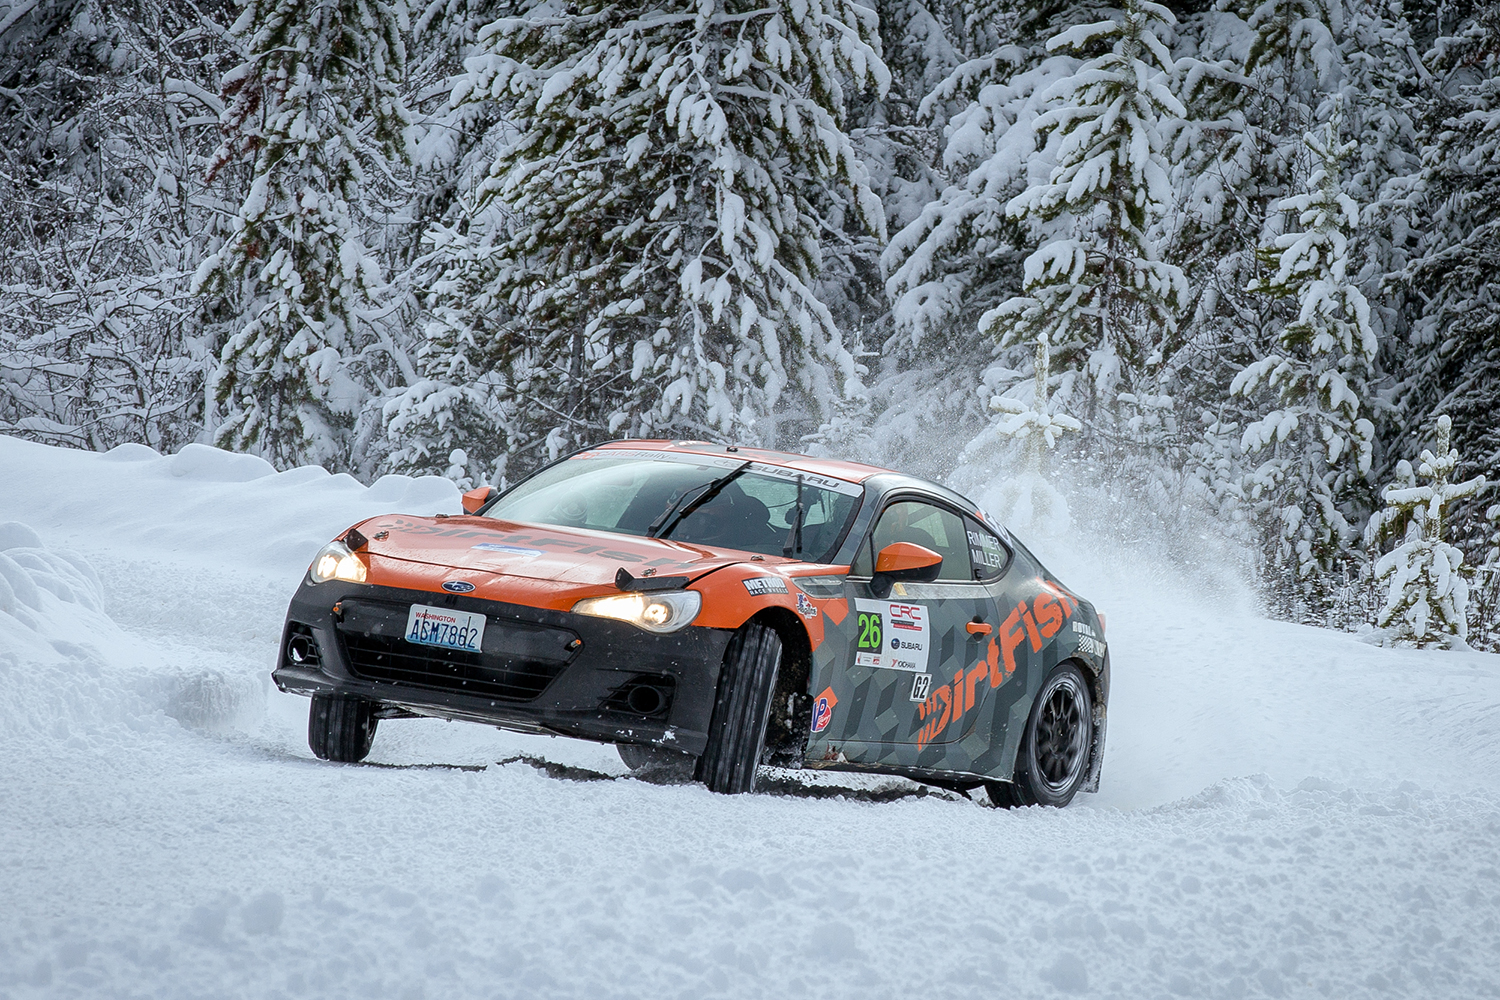 Image Source: Dirtfish